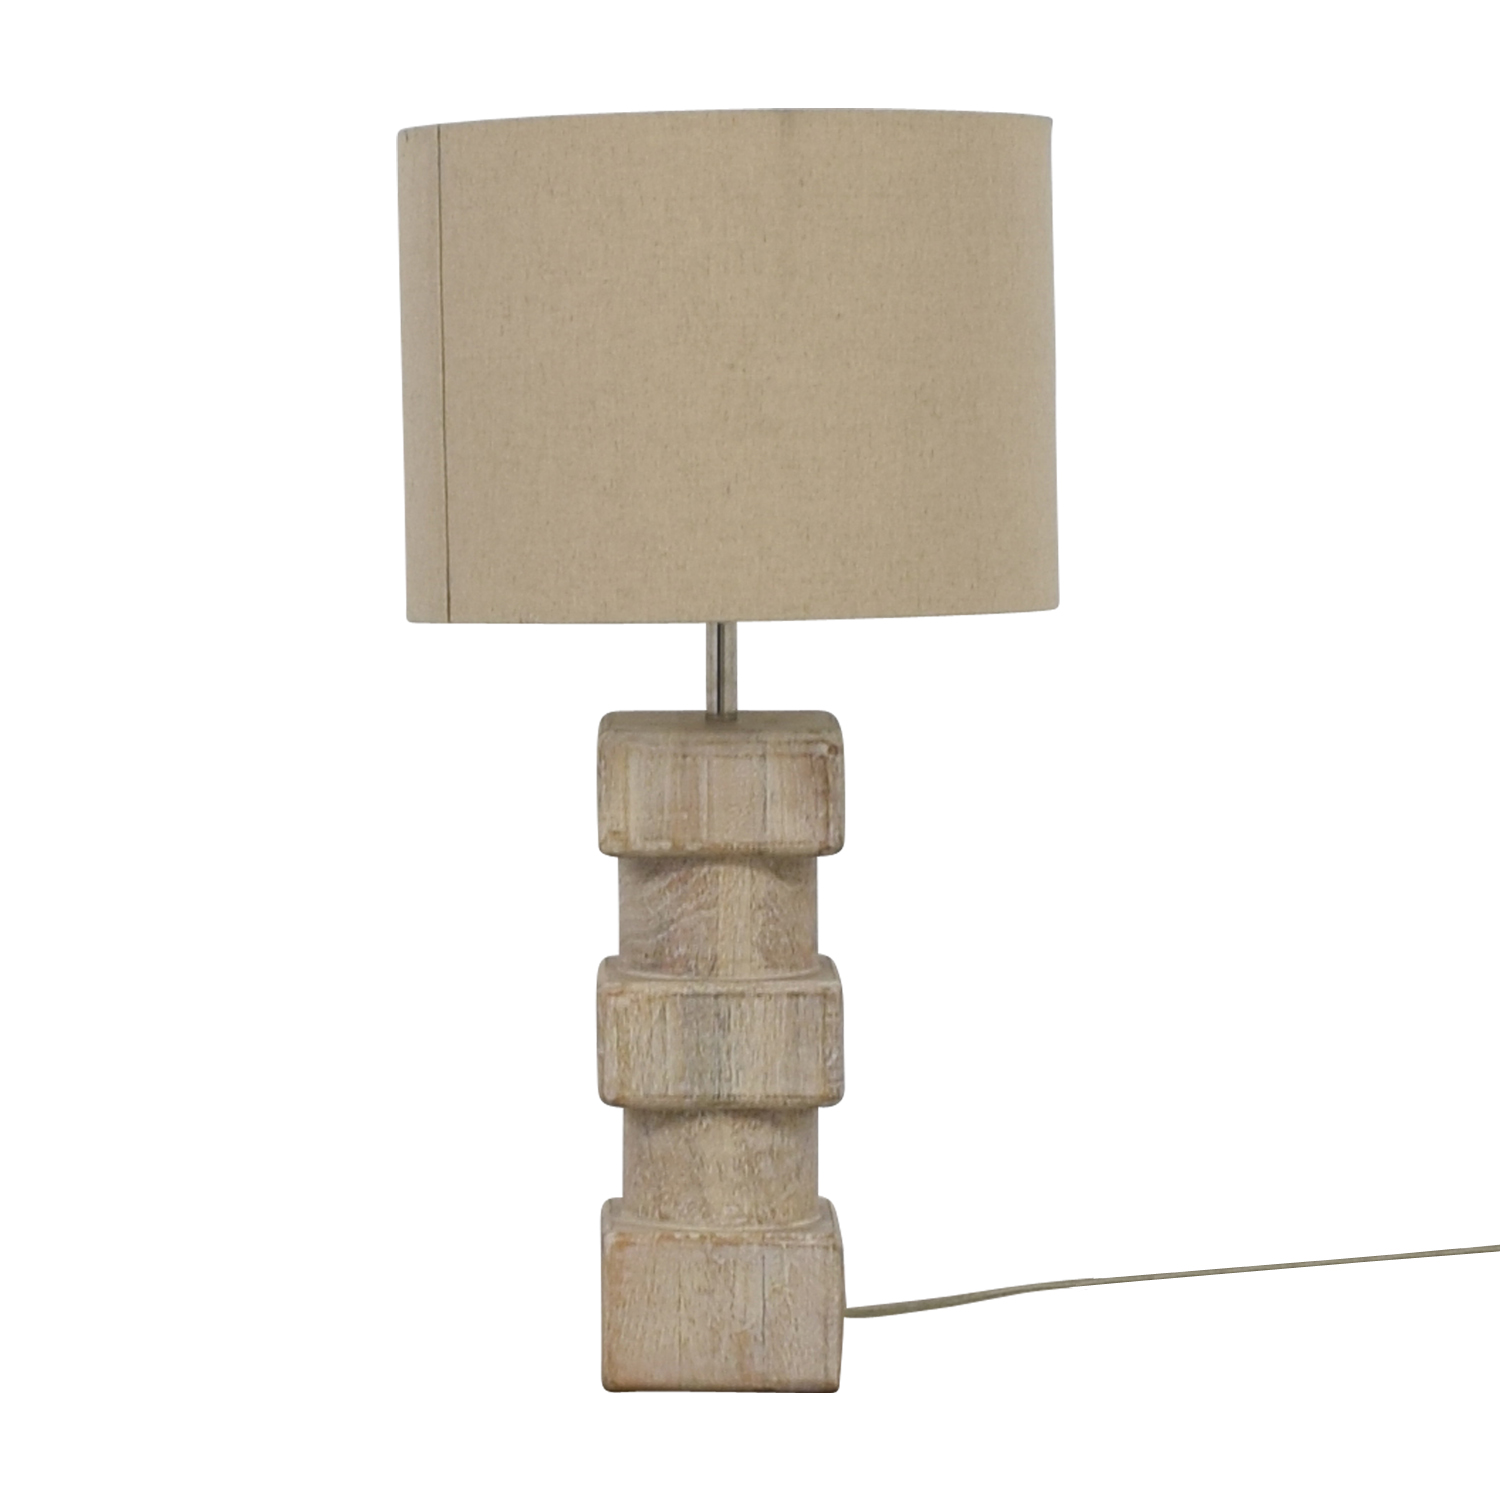 83 off west elm west elm table lamp decor west elm table lamp decor aloadofball Choice Image